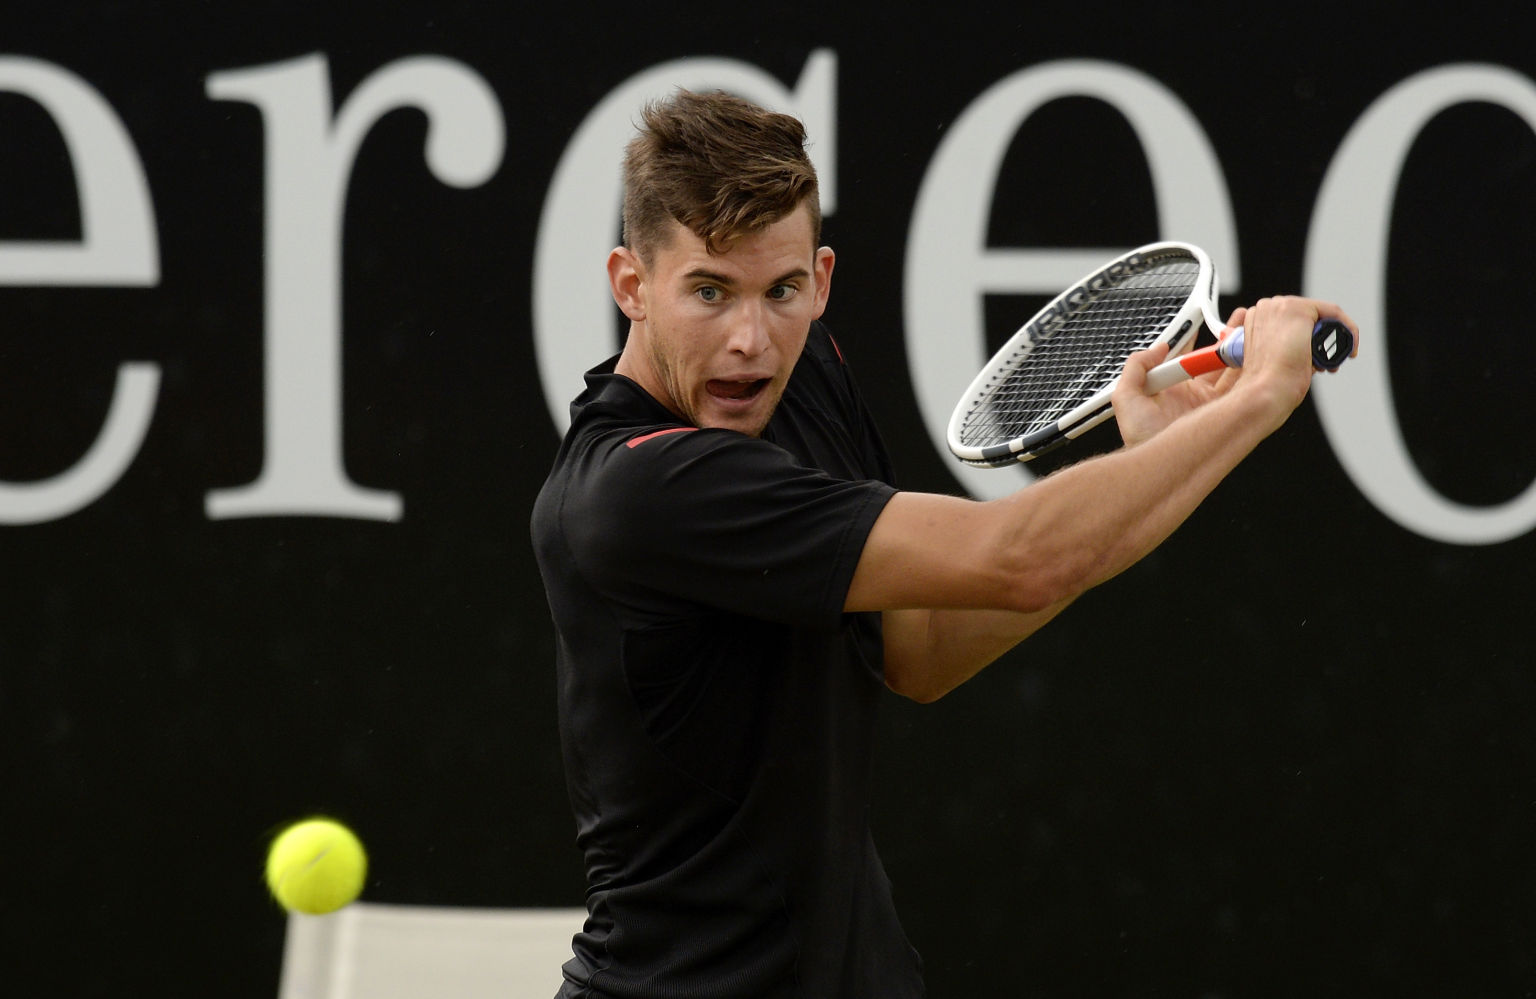 STUTTGART, GERMANY - JUNE 12: Dominic Thiem of Austria returns against Philipp Kohlschreiber of Germany during the final on day 9 of Mercedes Cup 2016 on June 12, 2016 in Stuttgart, Germany. (Photo by Daniel Kopatsch/Bongarts/Getty Images)